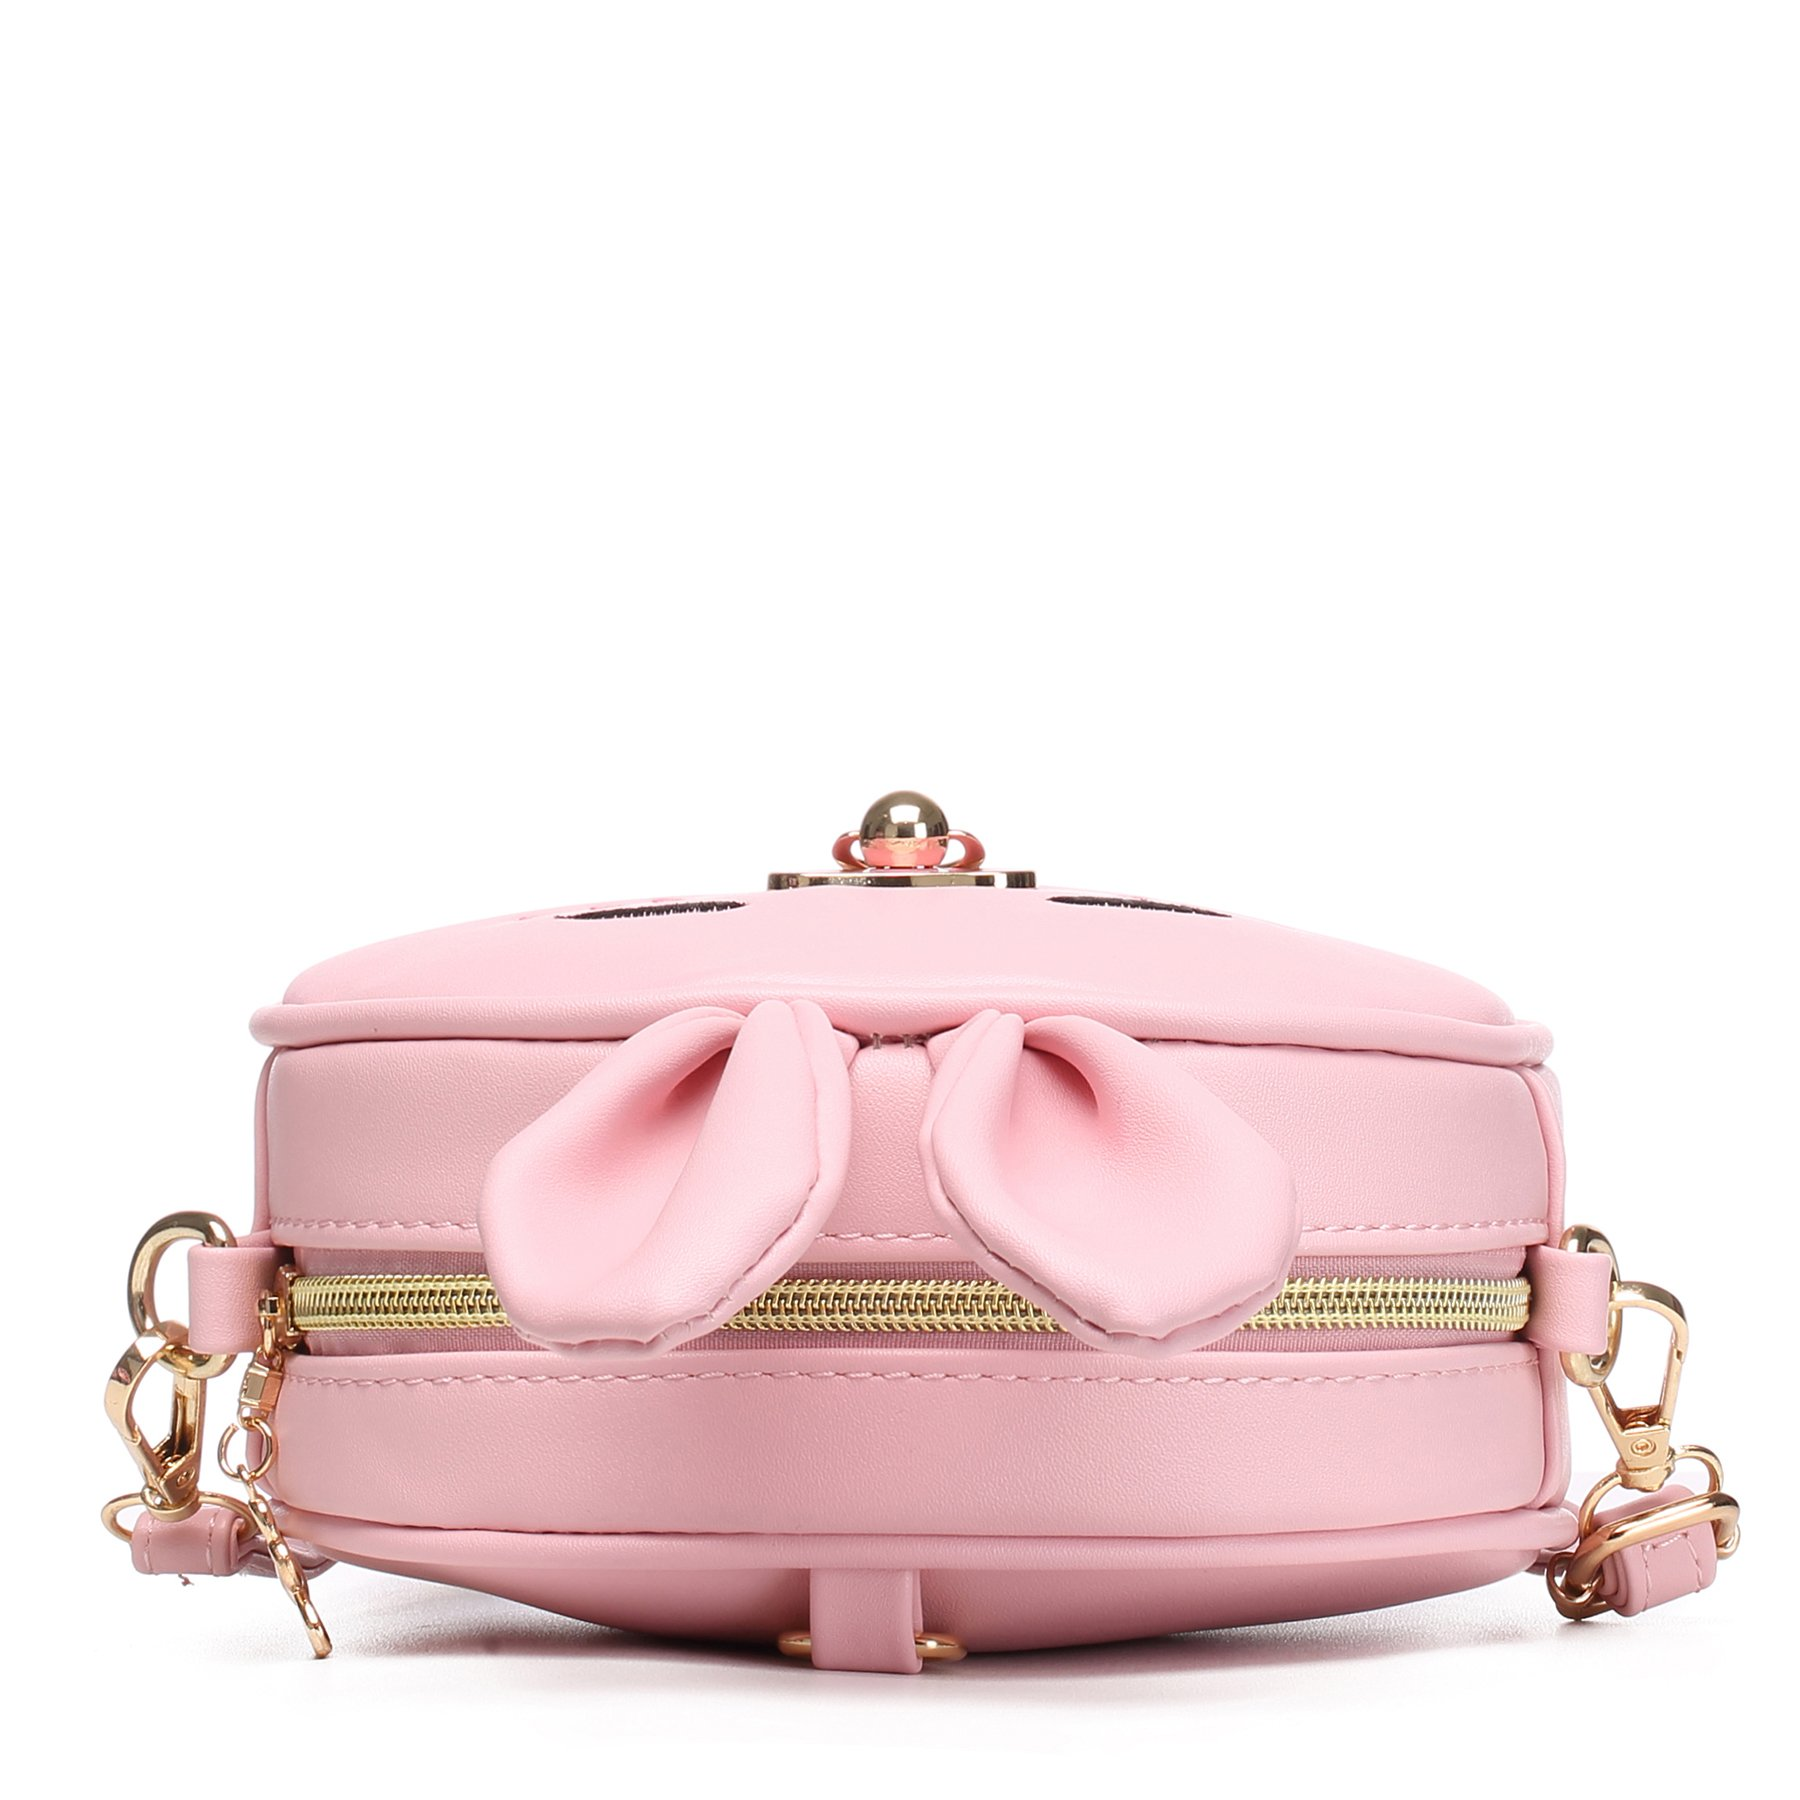 CMK Trendy Kids My First Purse for Toddler Kids Girls Cute Shoulder Bag Messenger Bags with Bunny Ear and Double Slide Zipper Novelty Birthday Gift (82011_Pink) by CMK Trendy Kids (Image #7)